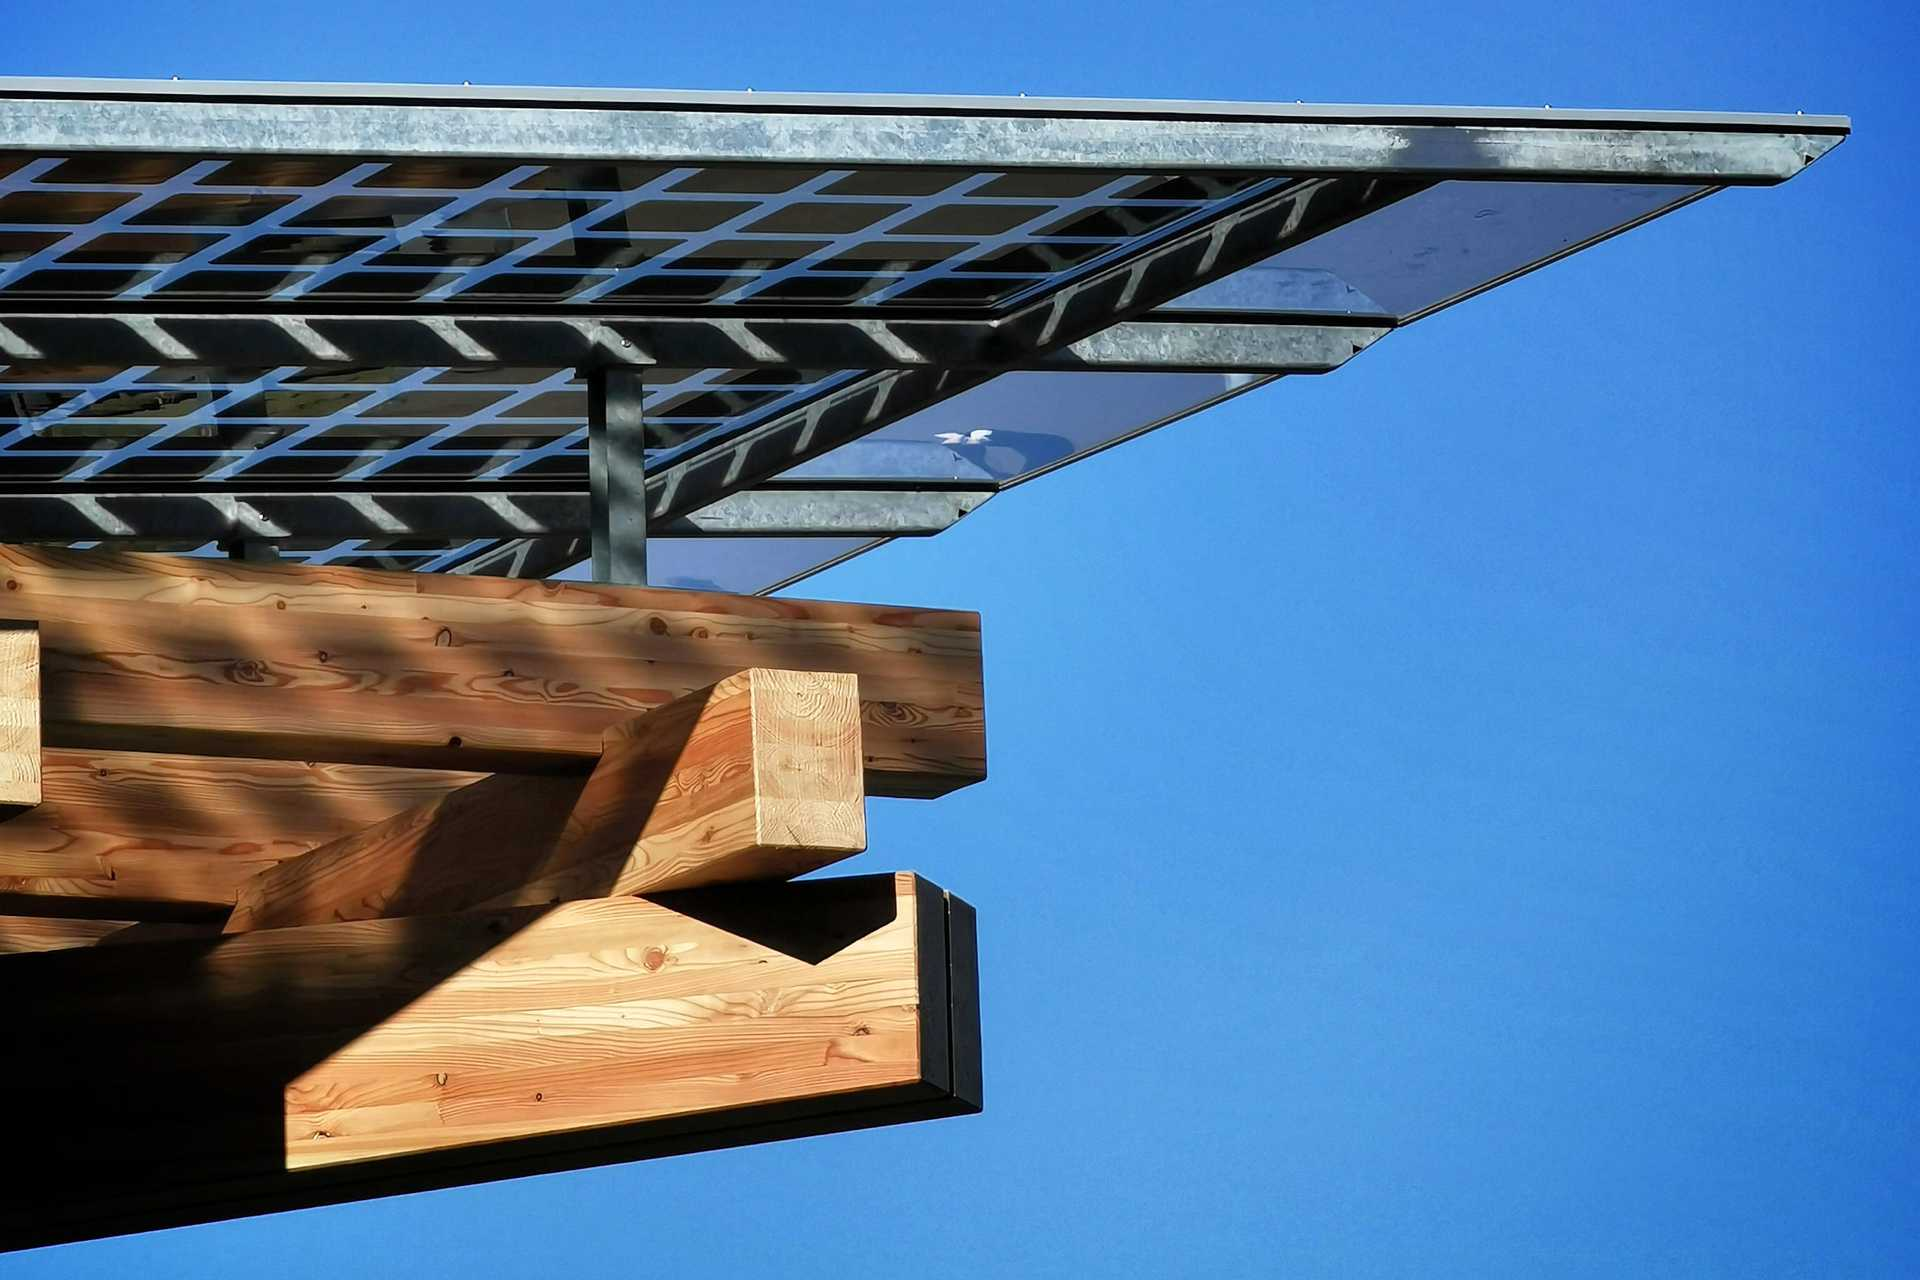 Detail of the K:Port timber structure with photovoltaic panels casting shadows